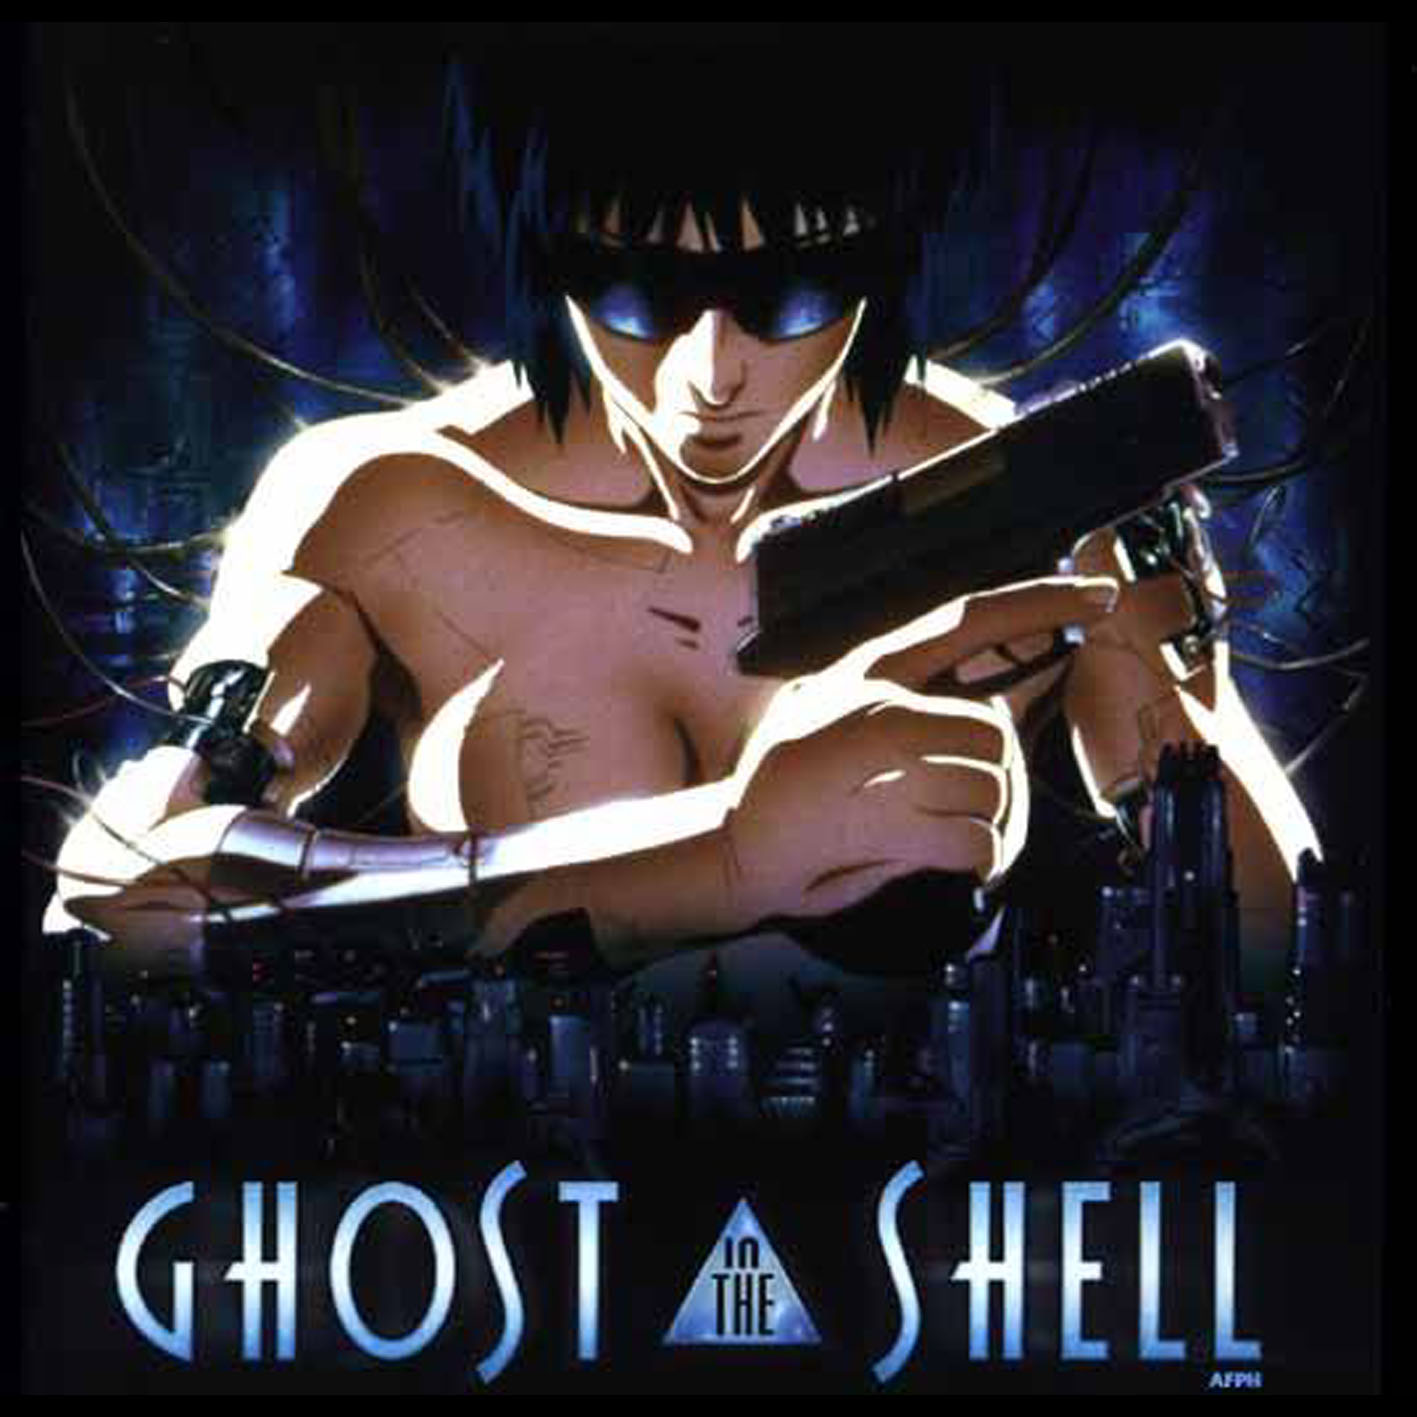 ghost in the shell ger dub